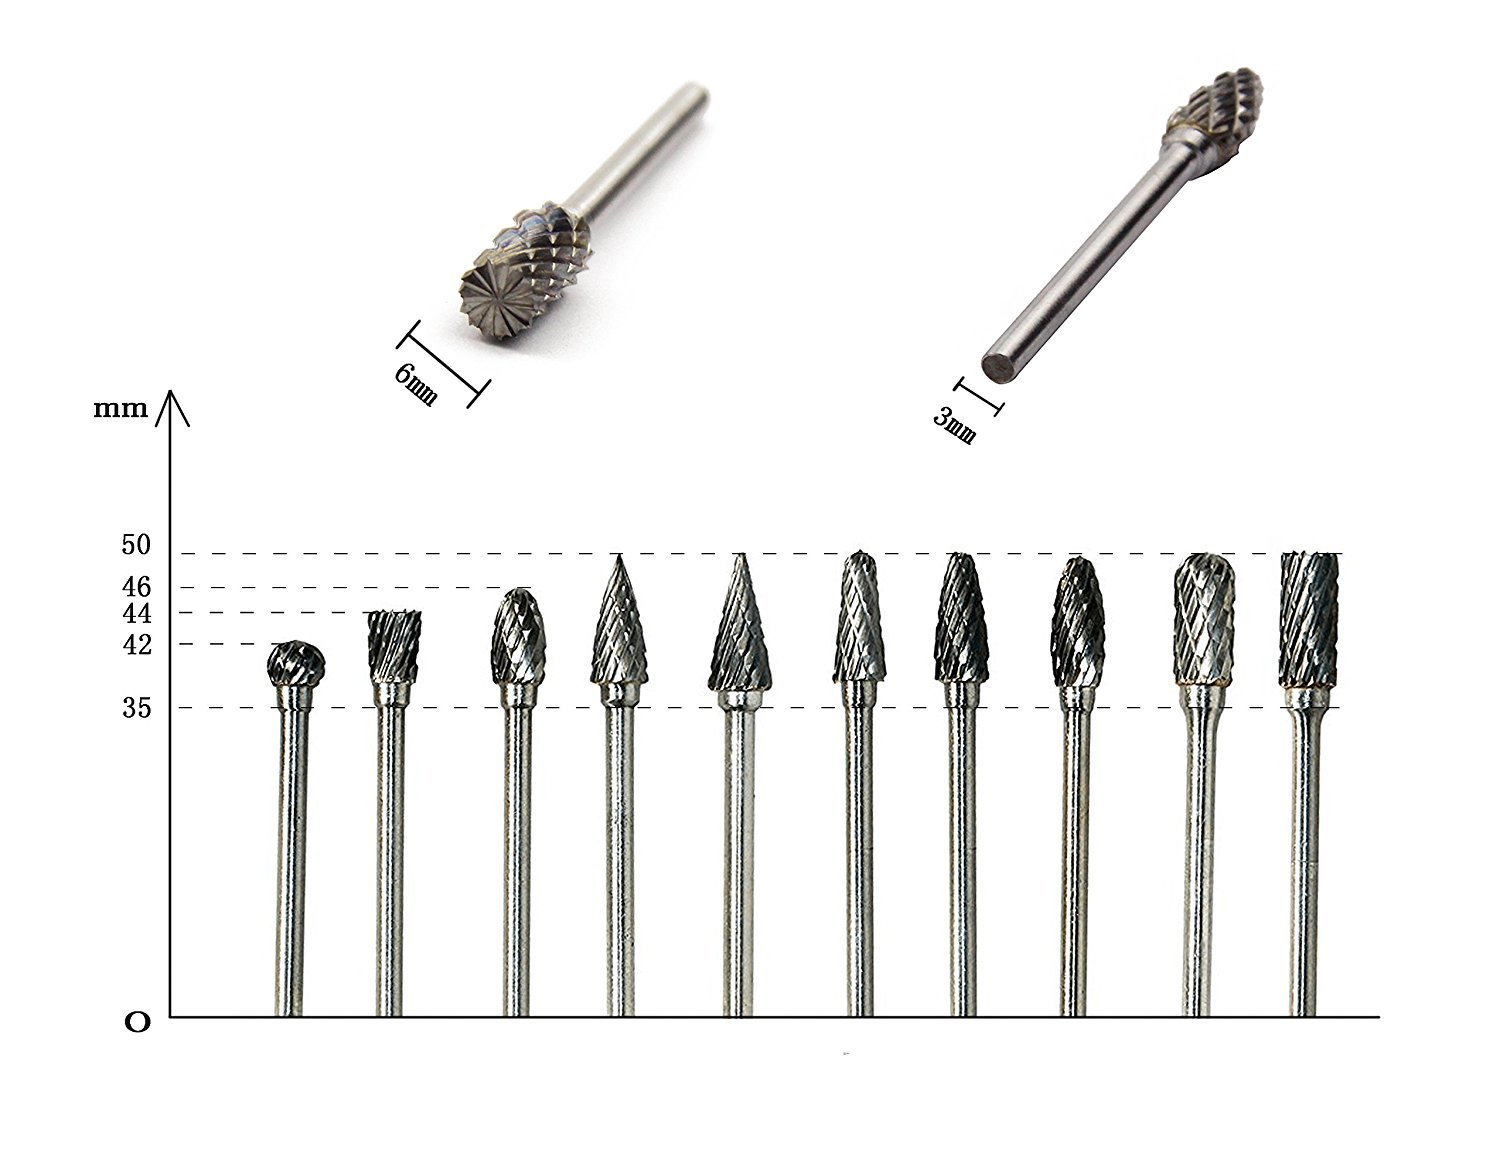 10 Pcs Double Cut Tungsten Steel Carbide Burrs for Dremel Rotary Tool Drill Bit 1/8'' Shank